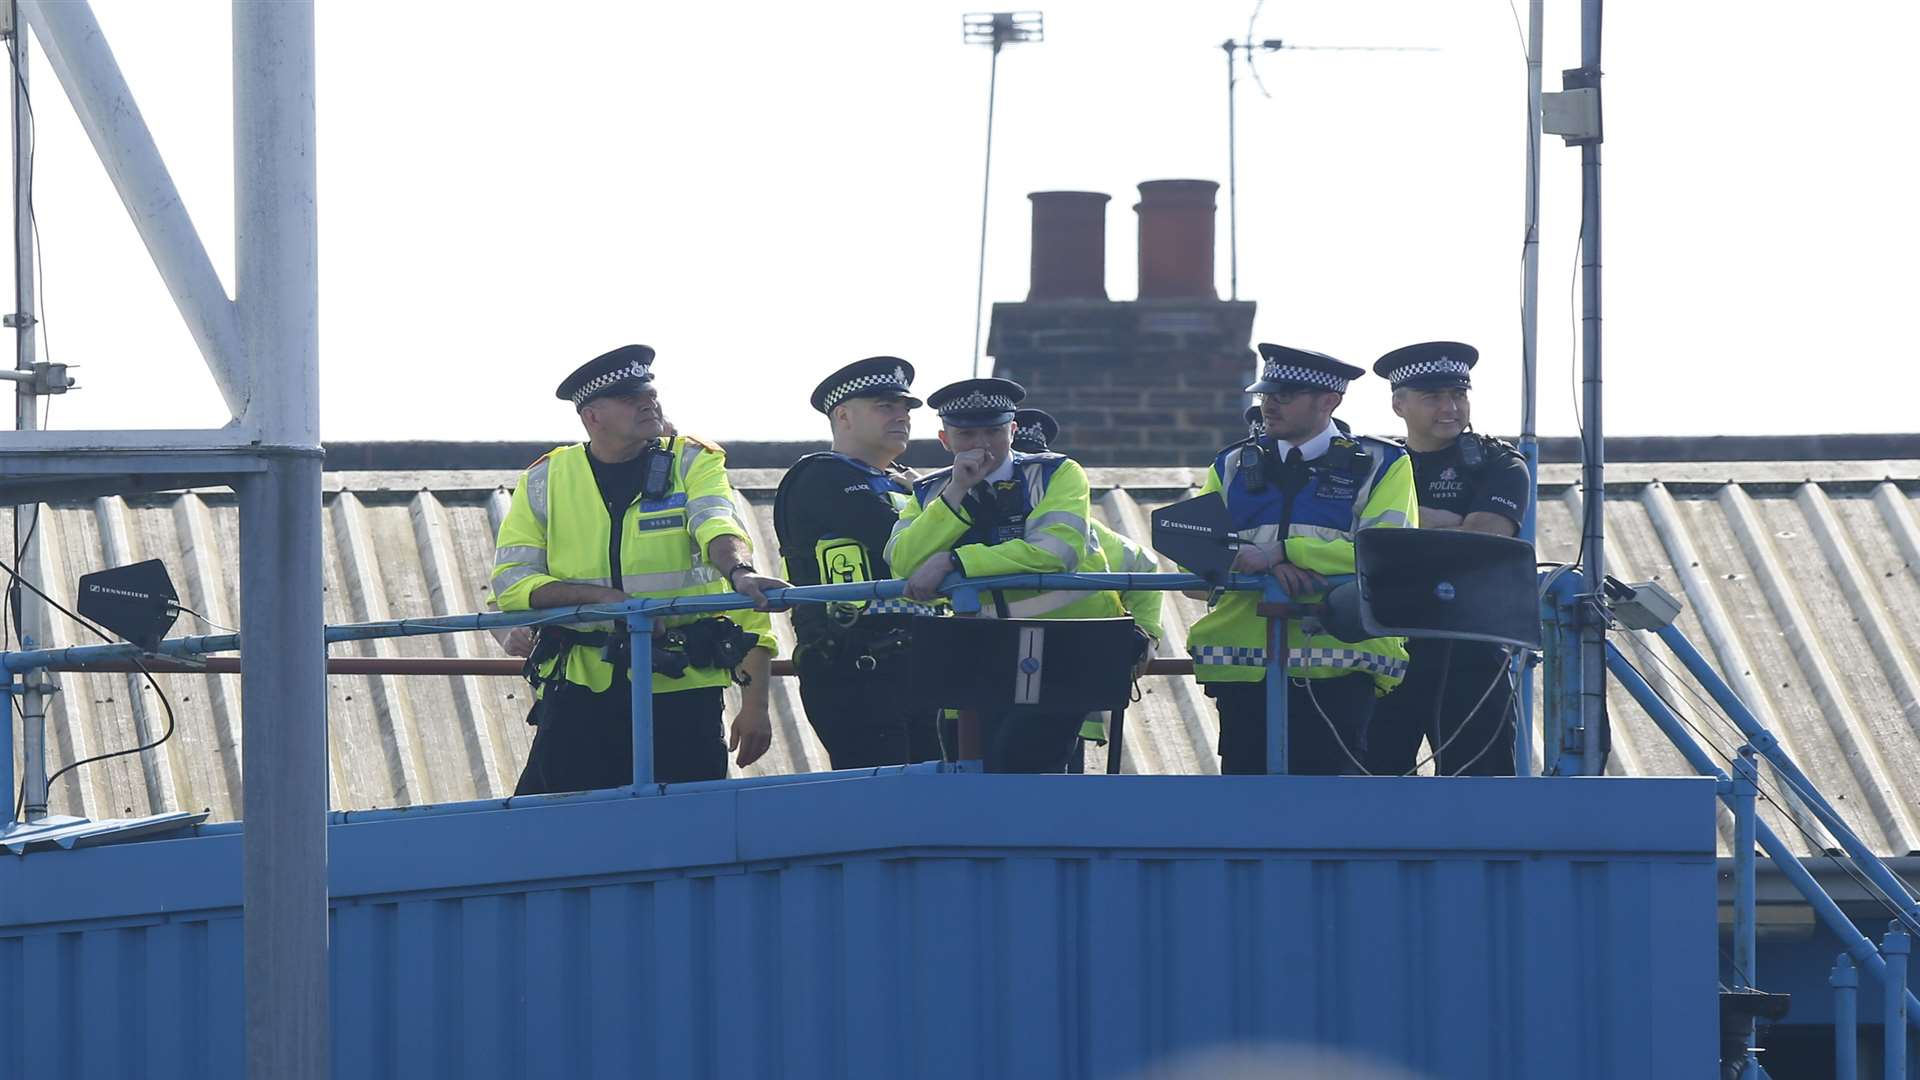 There was a heavy police presence at Priestfield Stadium